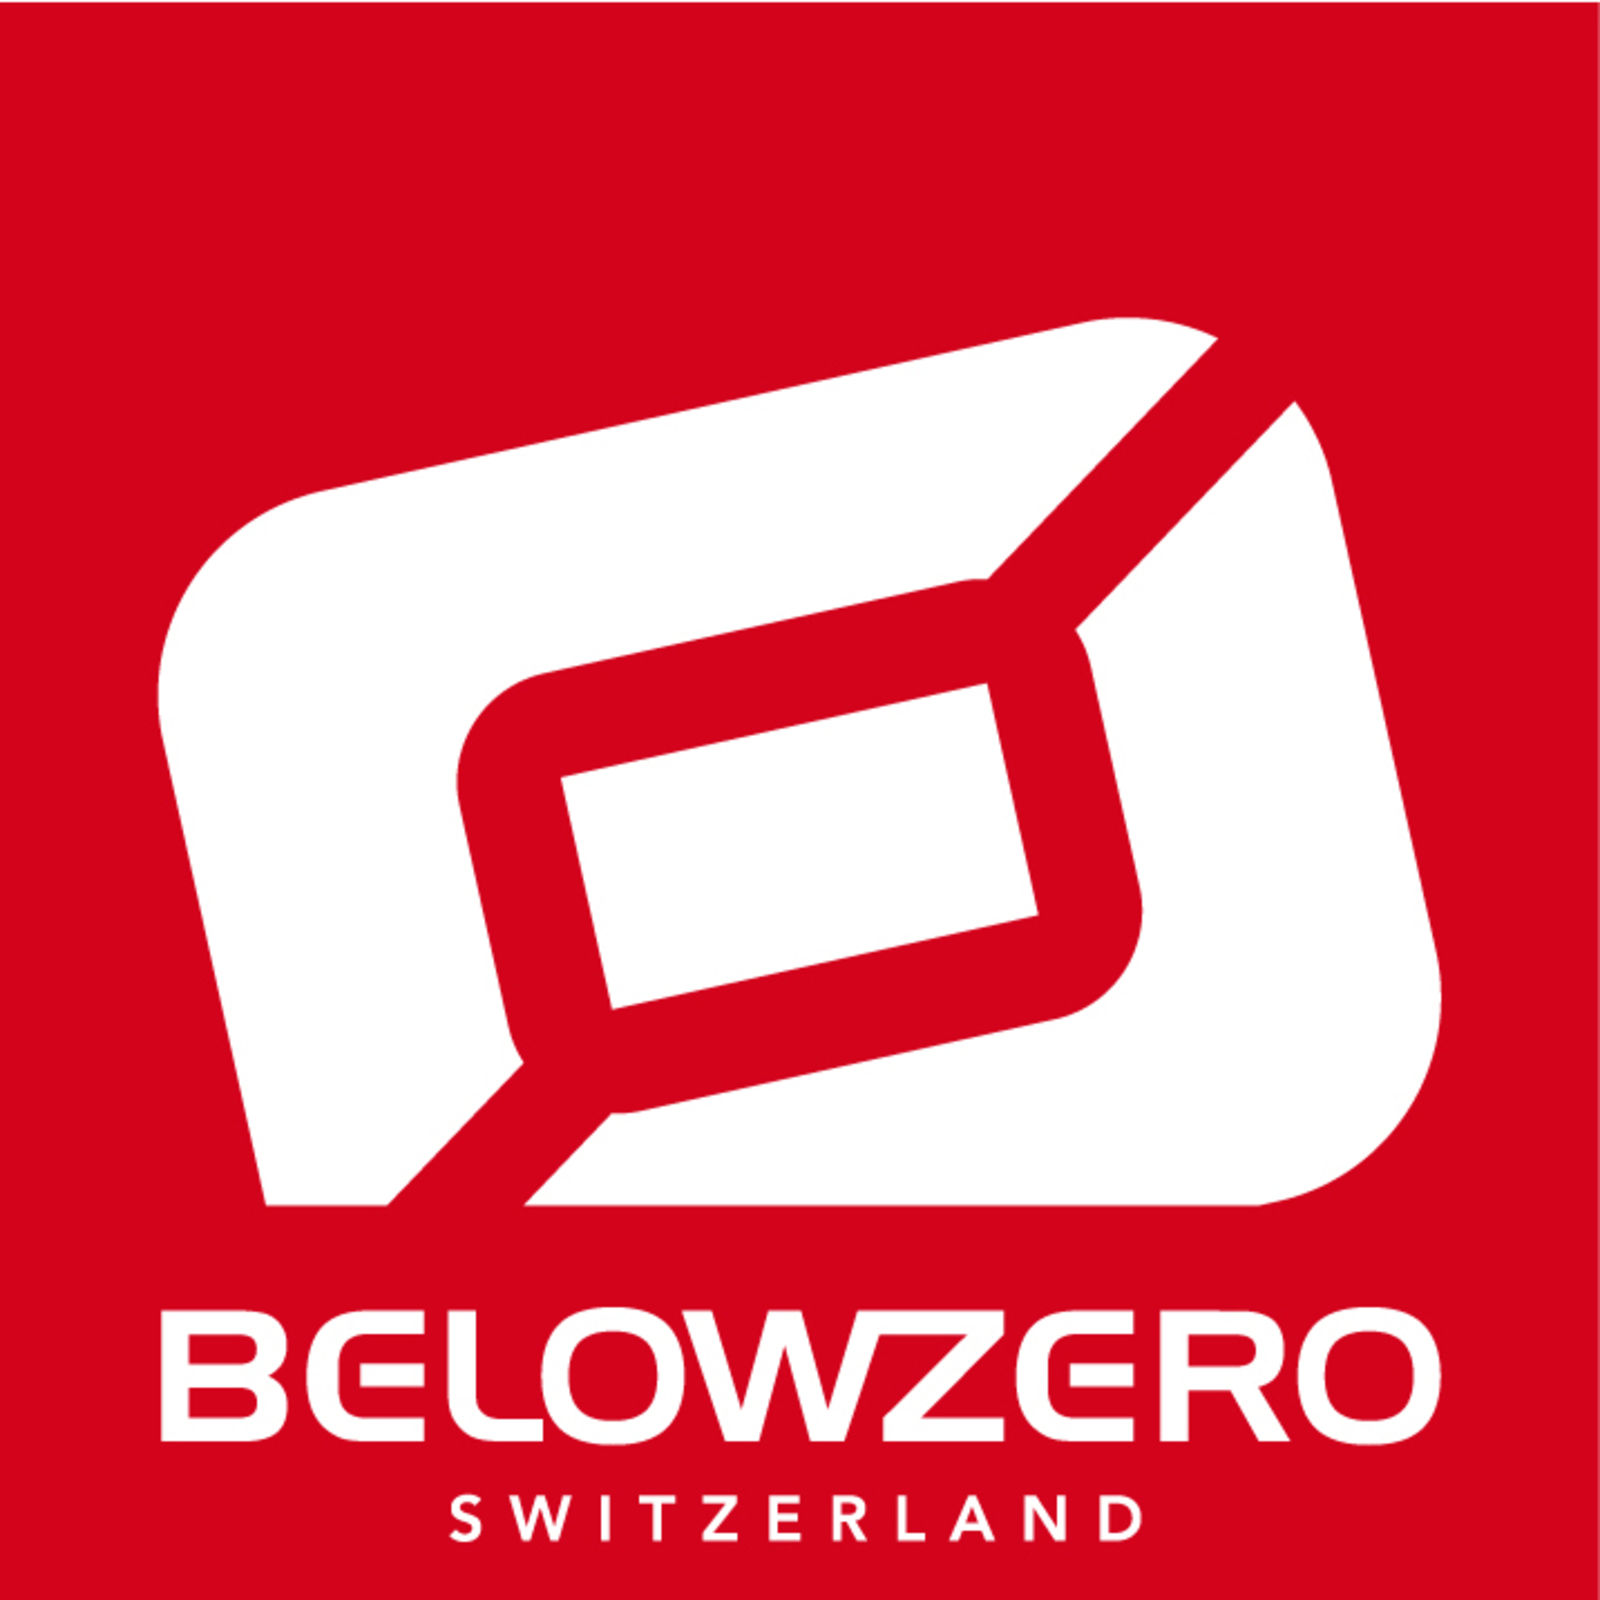 BELOWZERO Switzerland